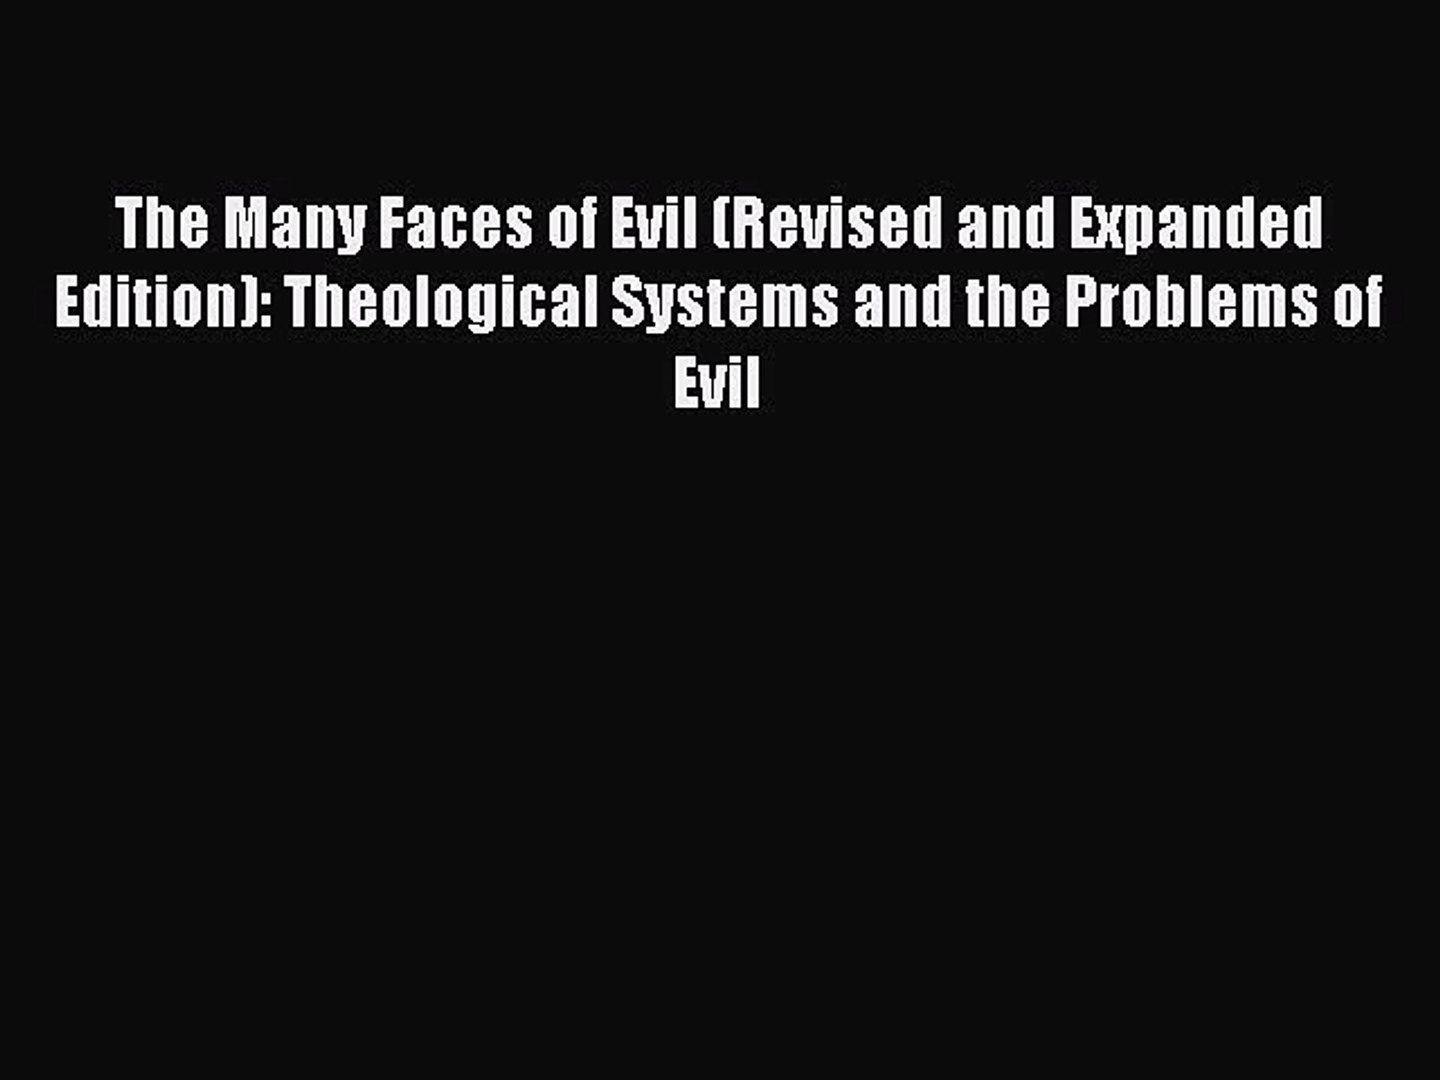 Read The Many Faces of Evil (Revised and Expanded Edition): Theological Systems and the Problems